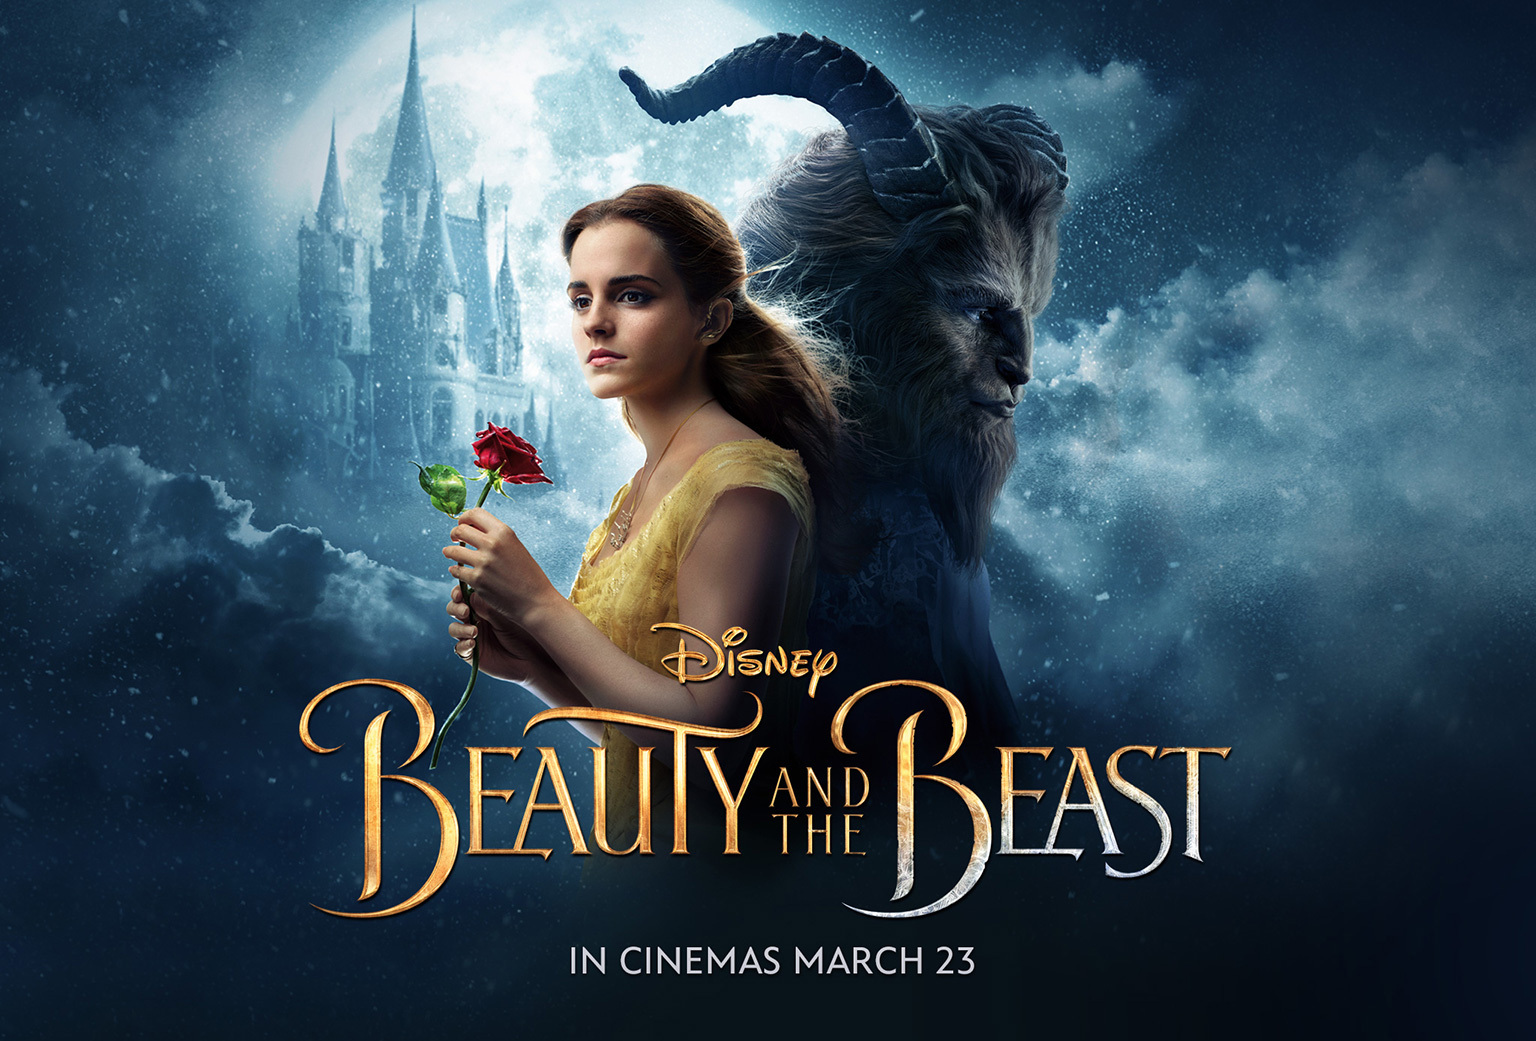 Kráska a zvíře –  Beauty and the Beast